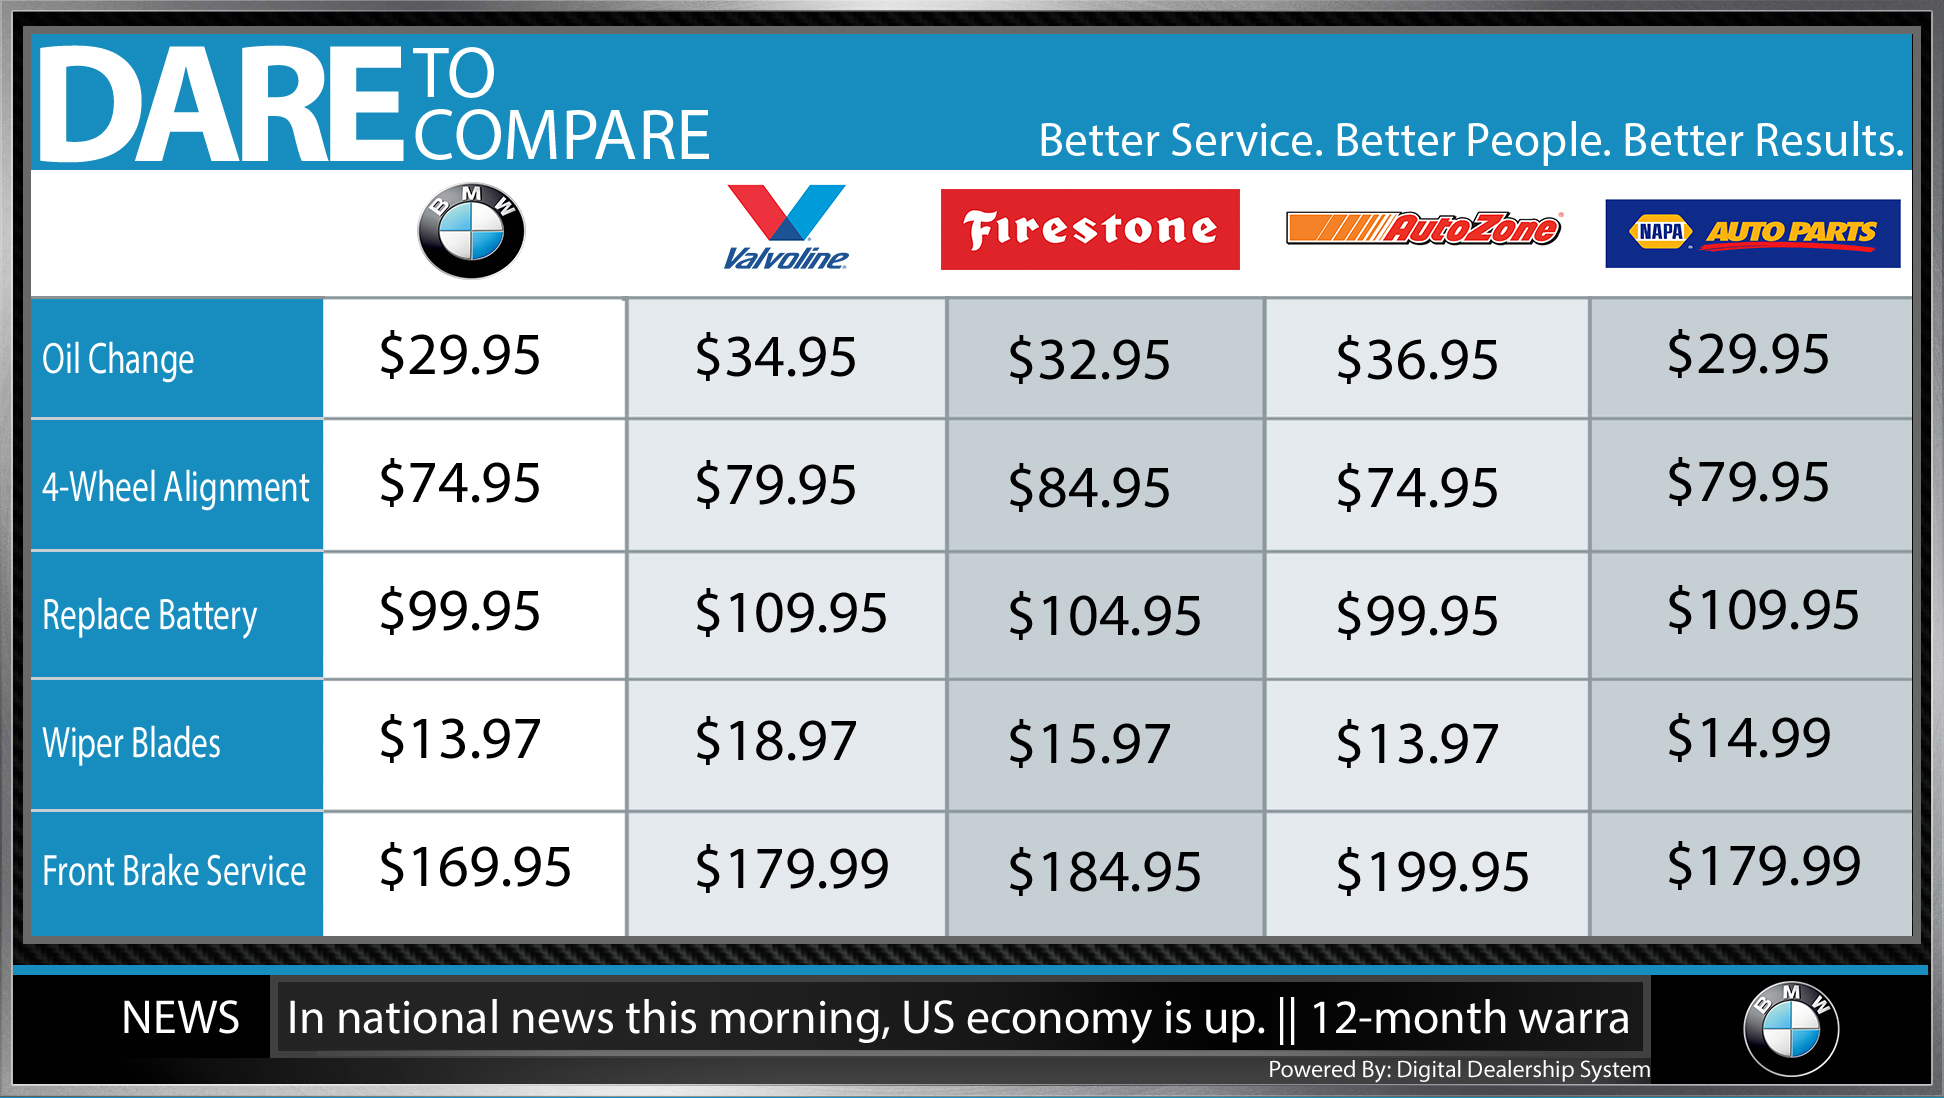 bmw dare to compare service menu